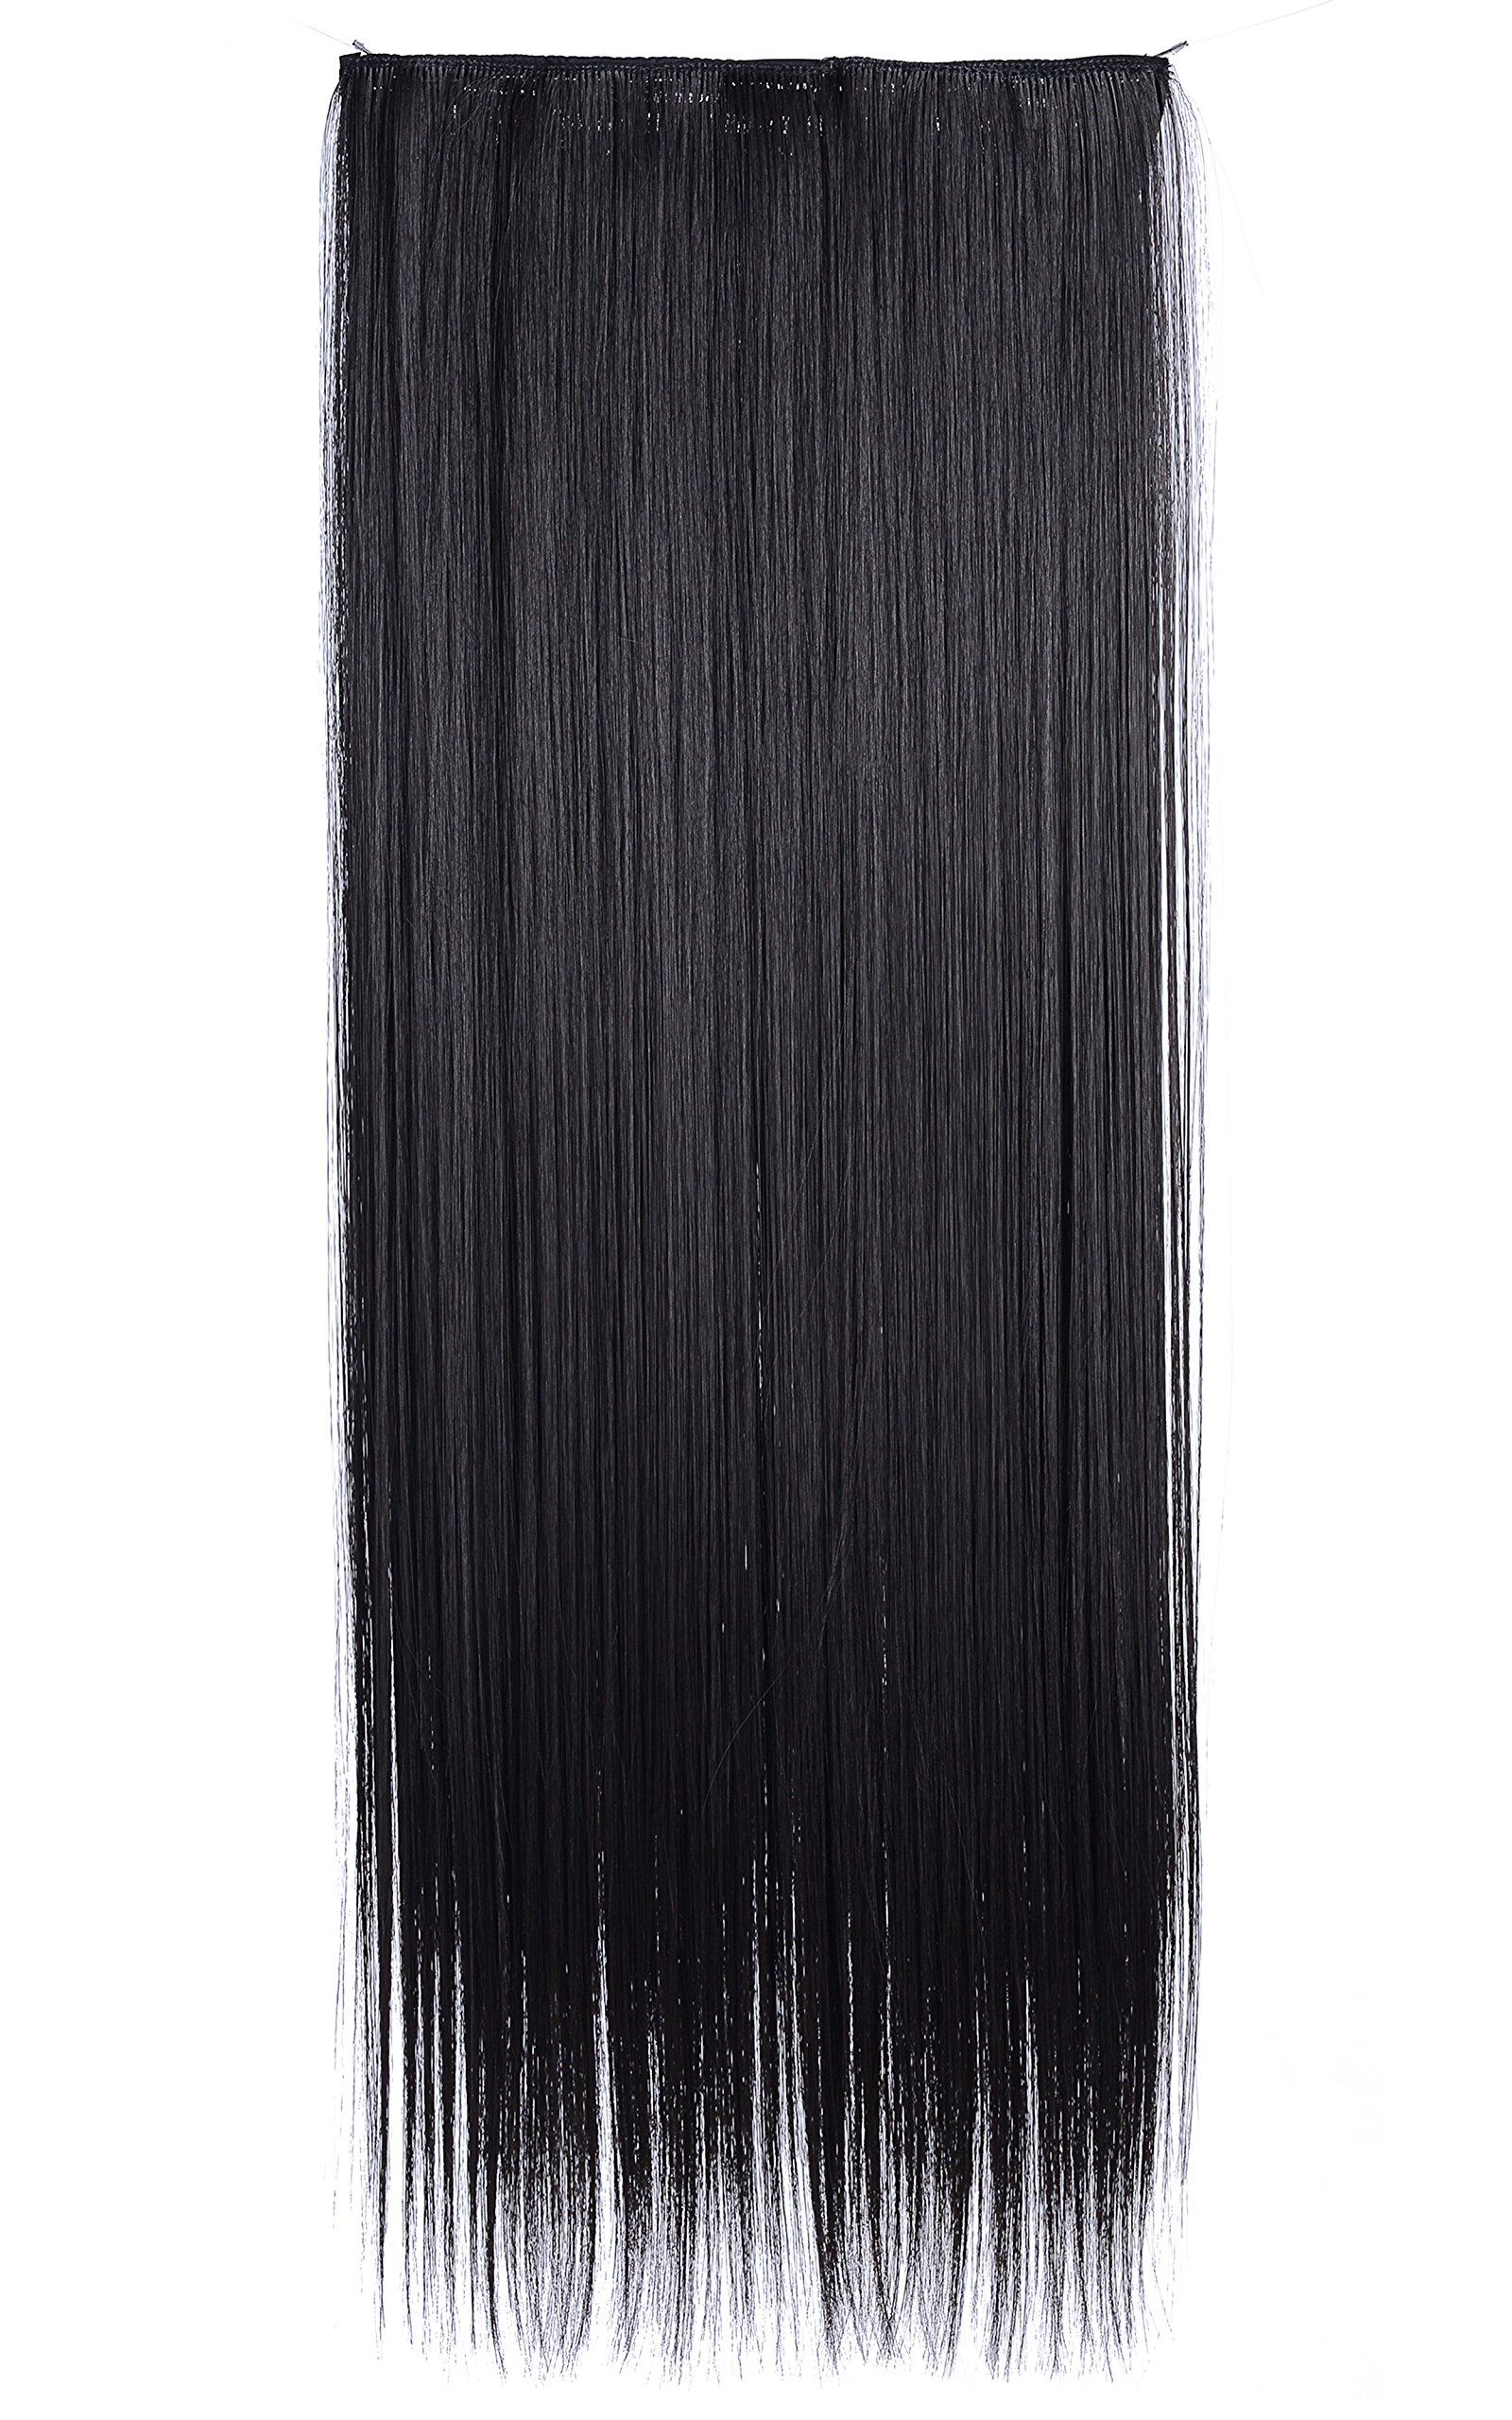 "Onedor 24"" Straight 3/4 Full Head Synthetic Hair Extensions 140g Clip-on Clip-in Hairpieces (4- Dark Brown)"